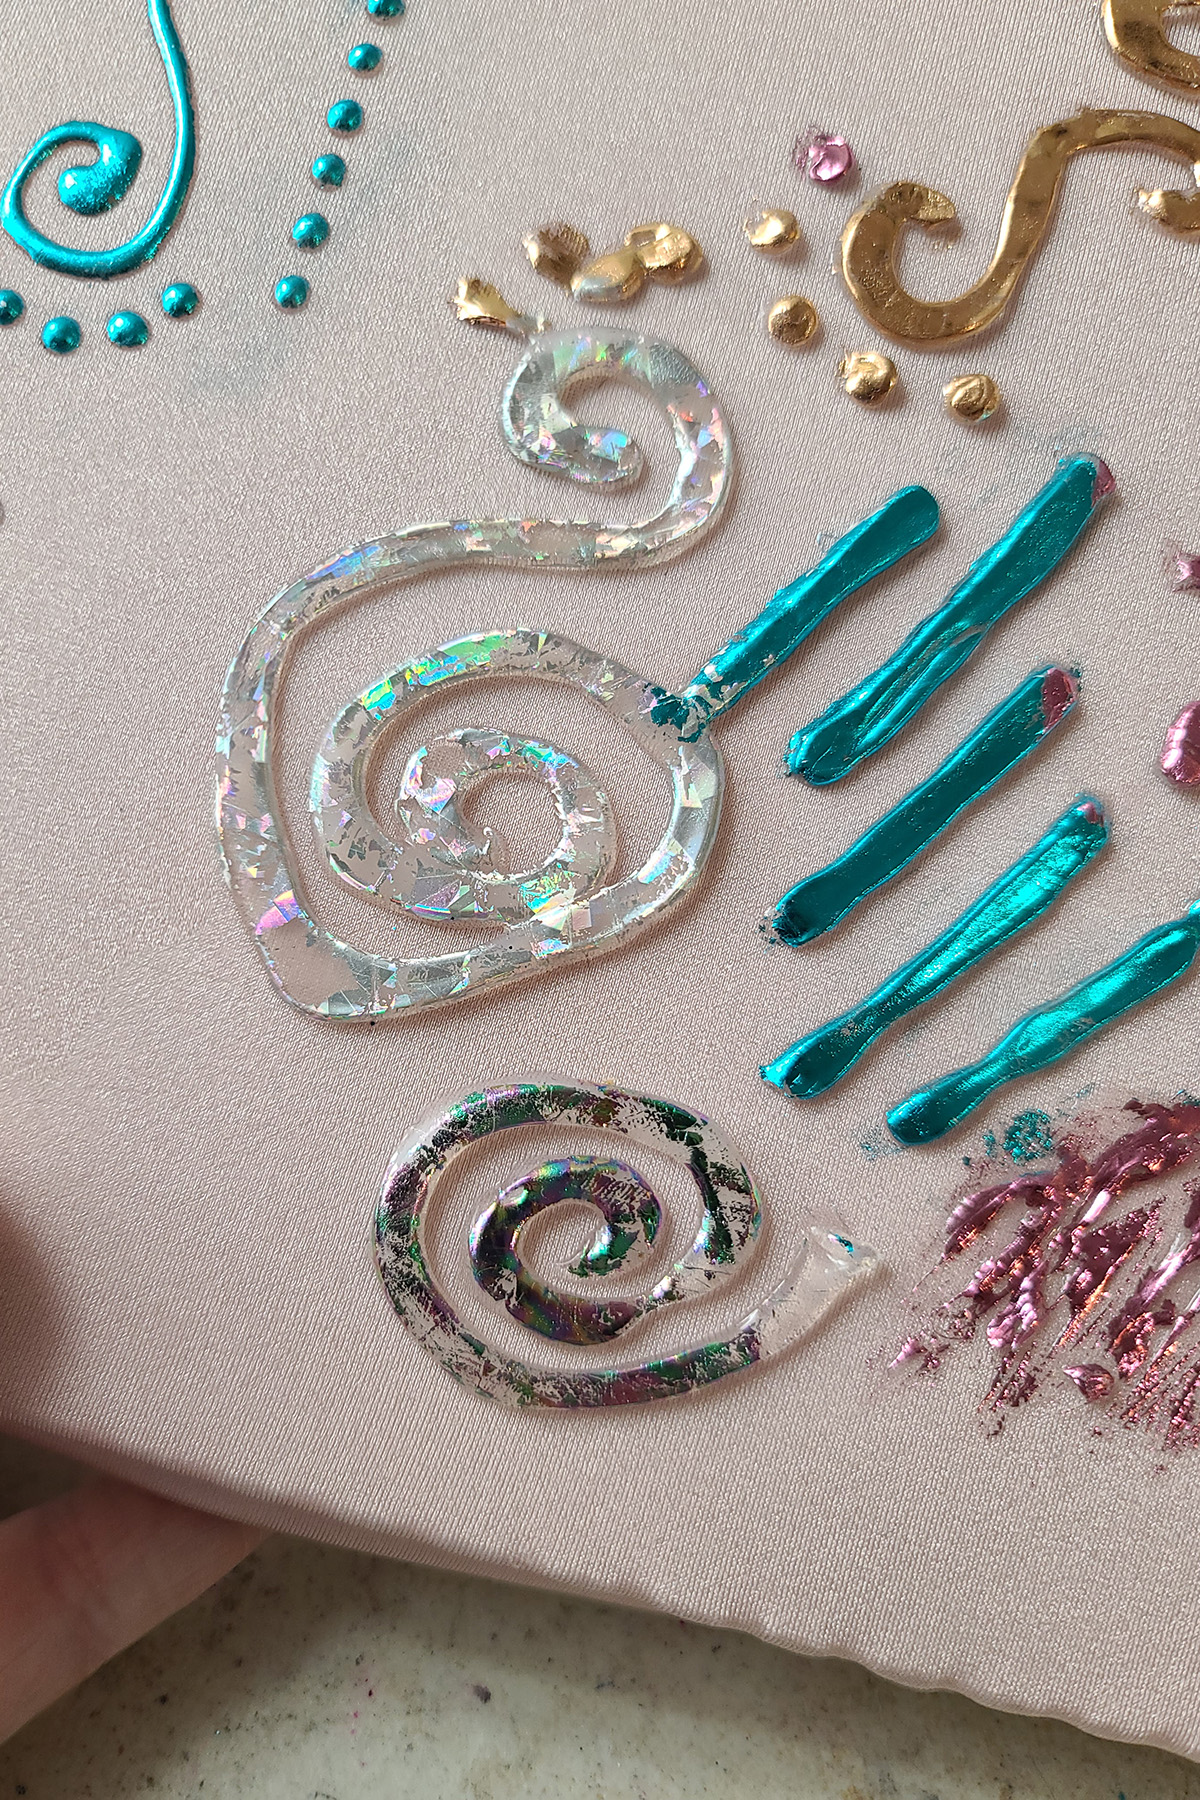 A close up view of a spiral design in caulking. It is partially covered with holographic silver foil.